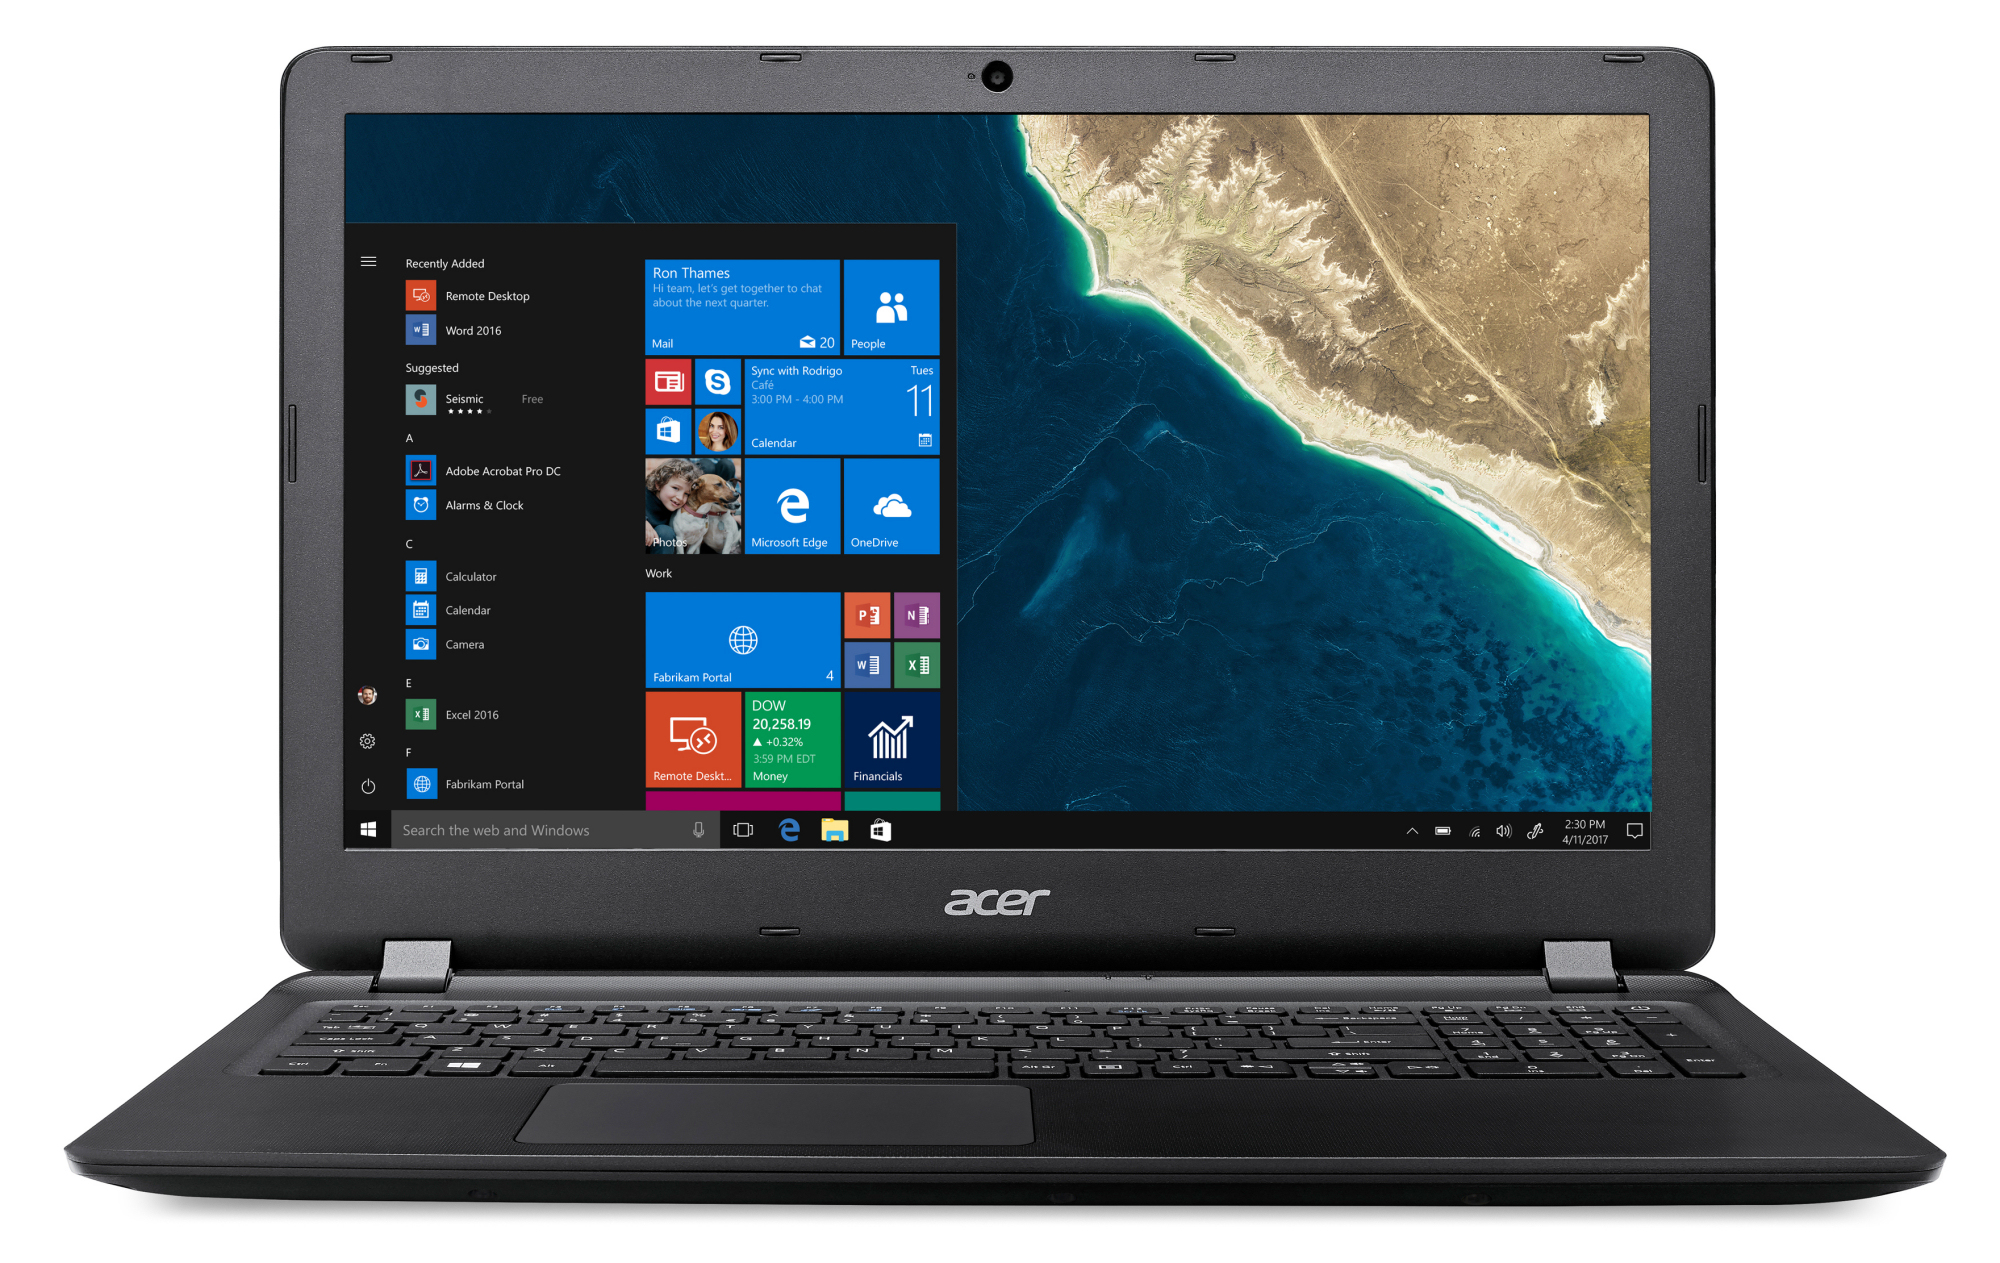 ACER EXTENSA 5510Z NOTEBOOK ATHEROS WLAN DRIVERS FOR WINDOWS VISTA